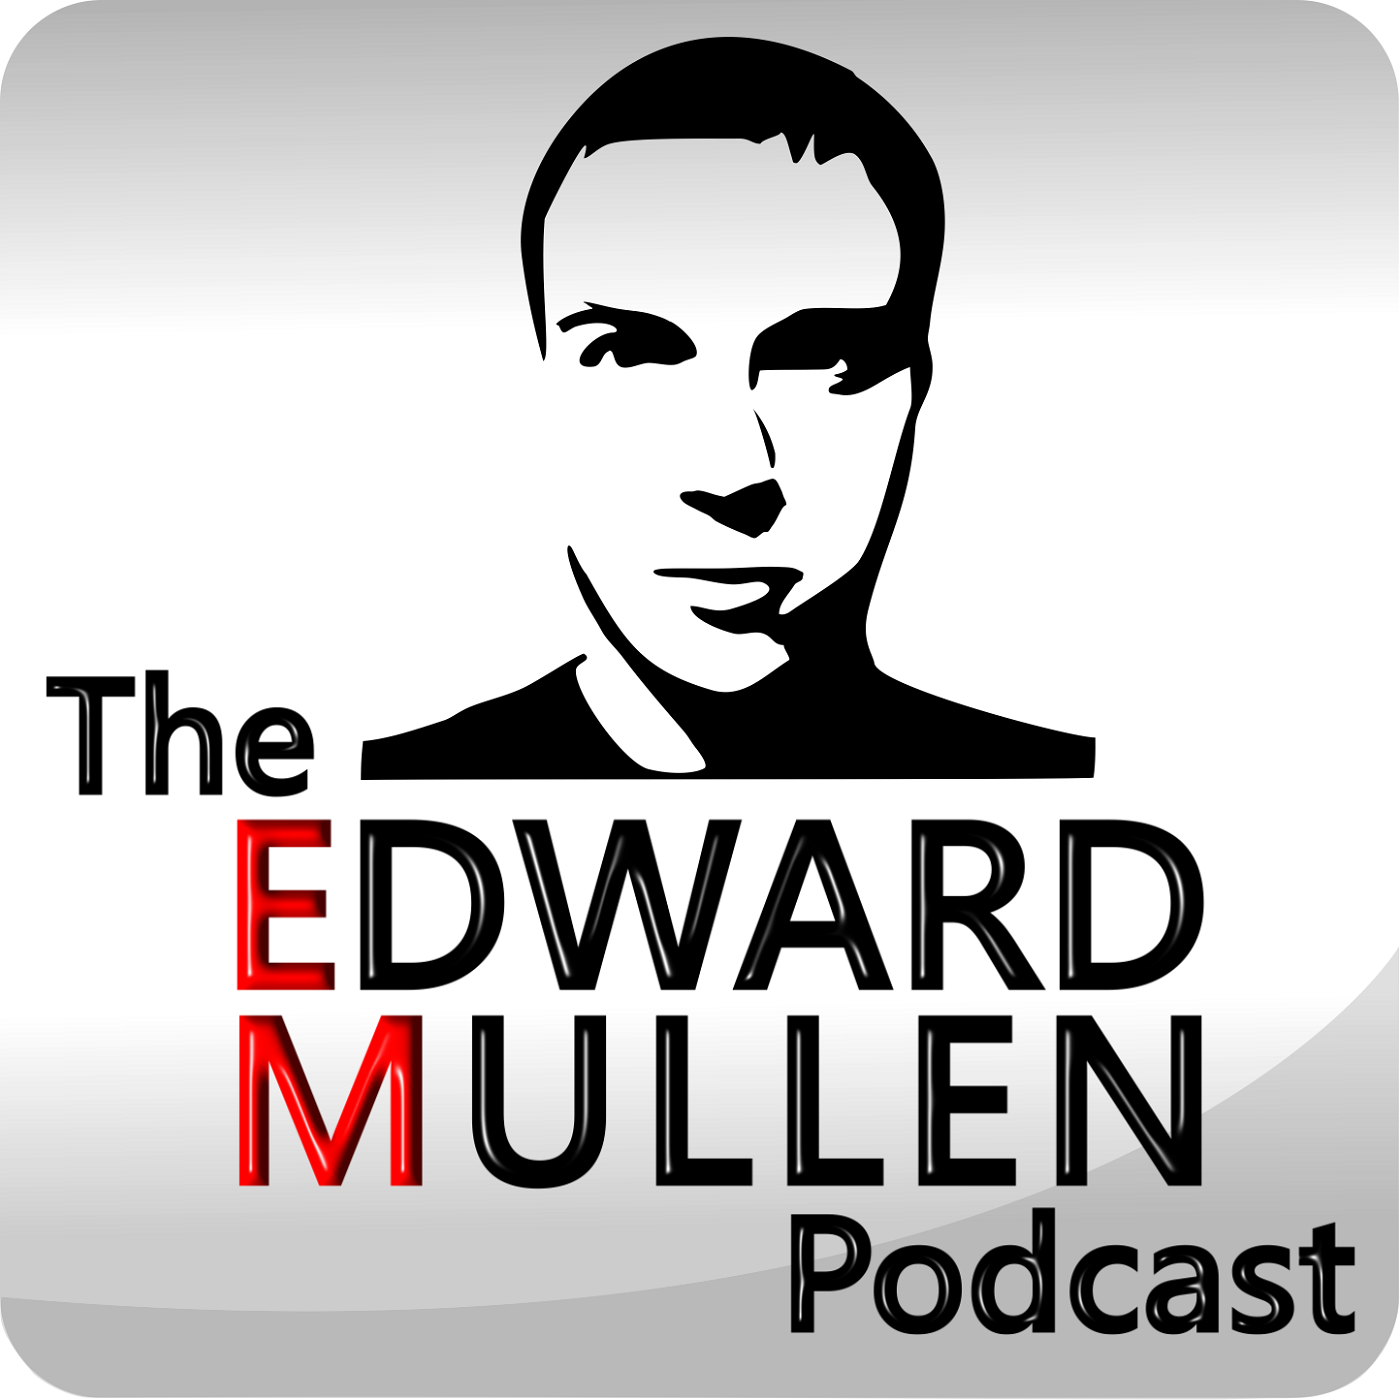 The Edward Mullen Podcast